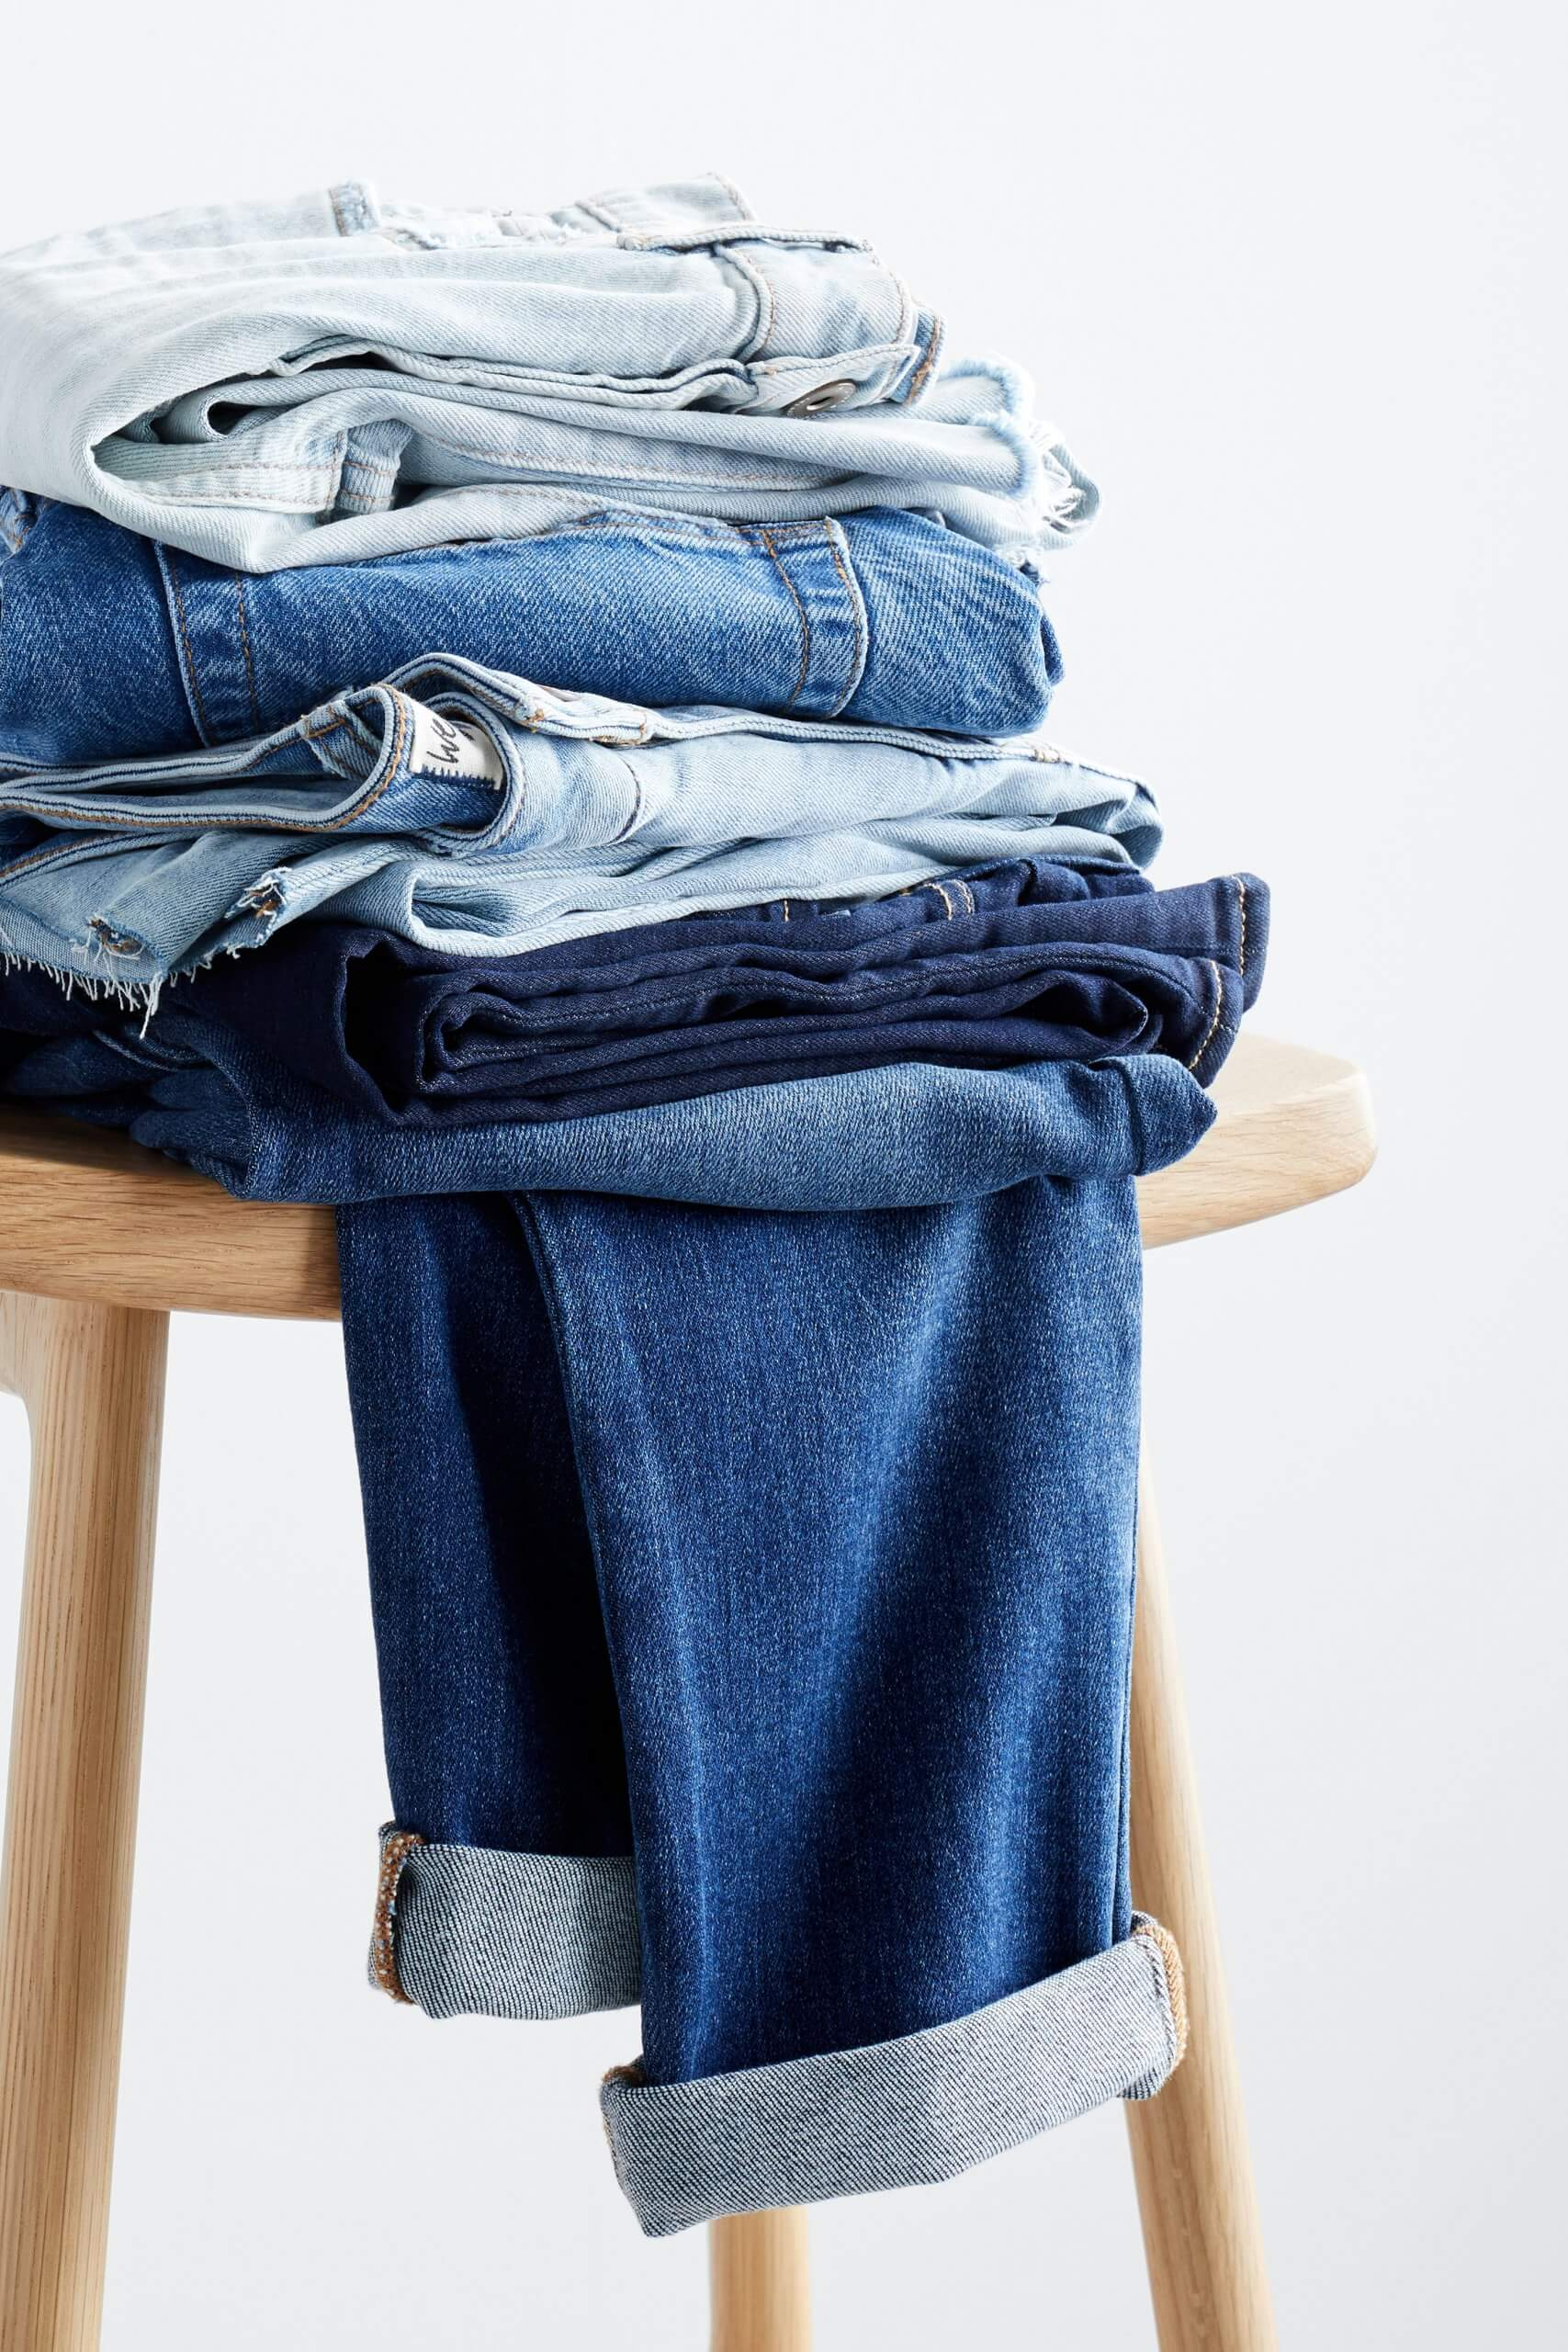 Stitch Fix women's blue jeans in various washes folded and stacked on a wooden stool.